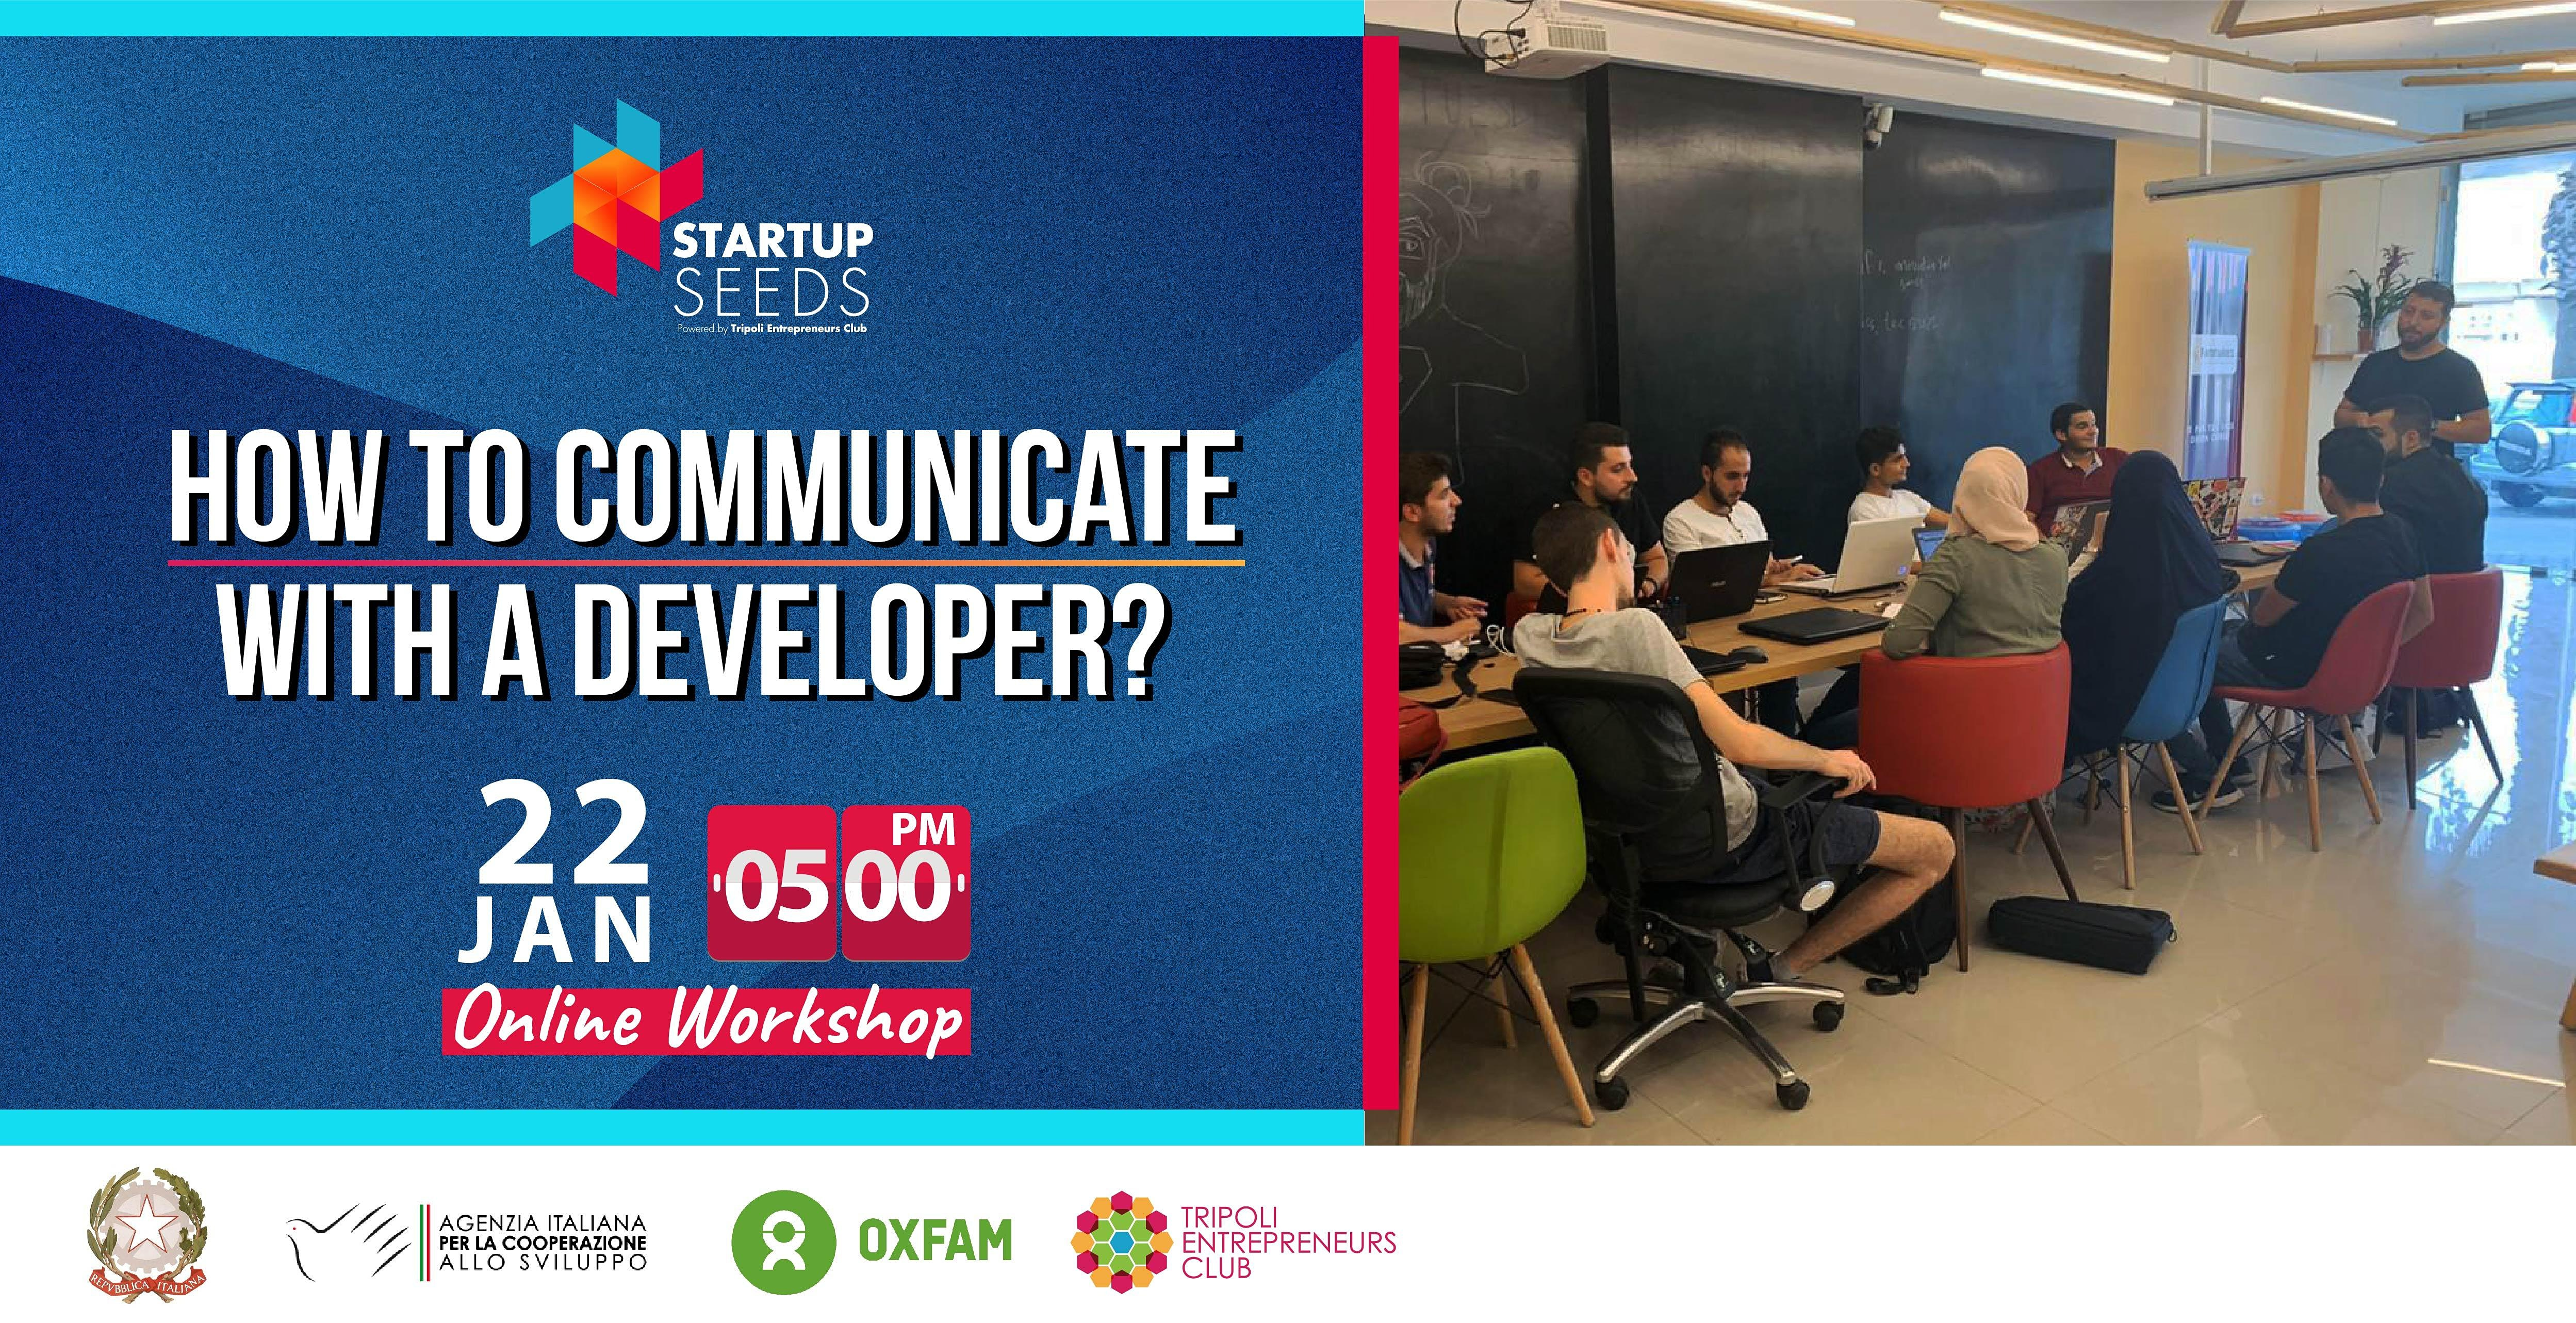 How To Communicate With A Developer?